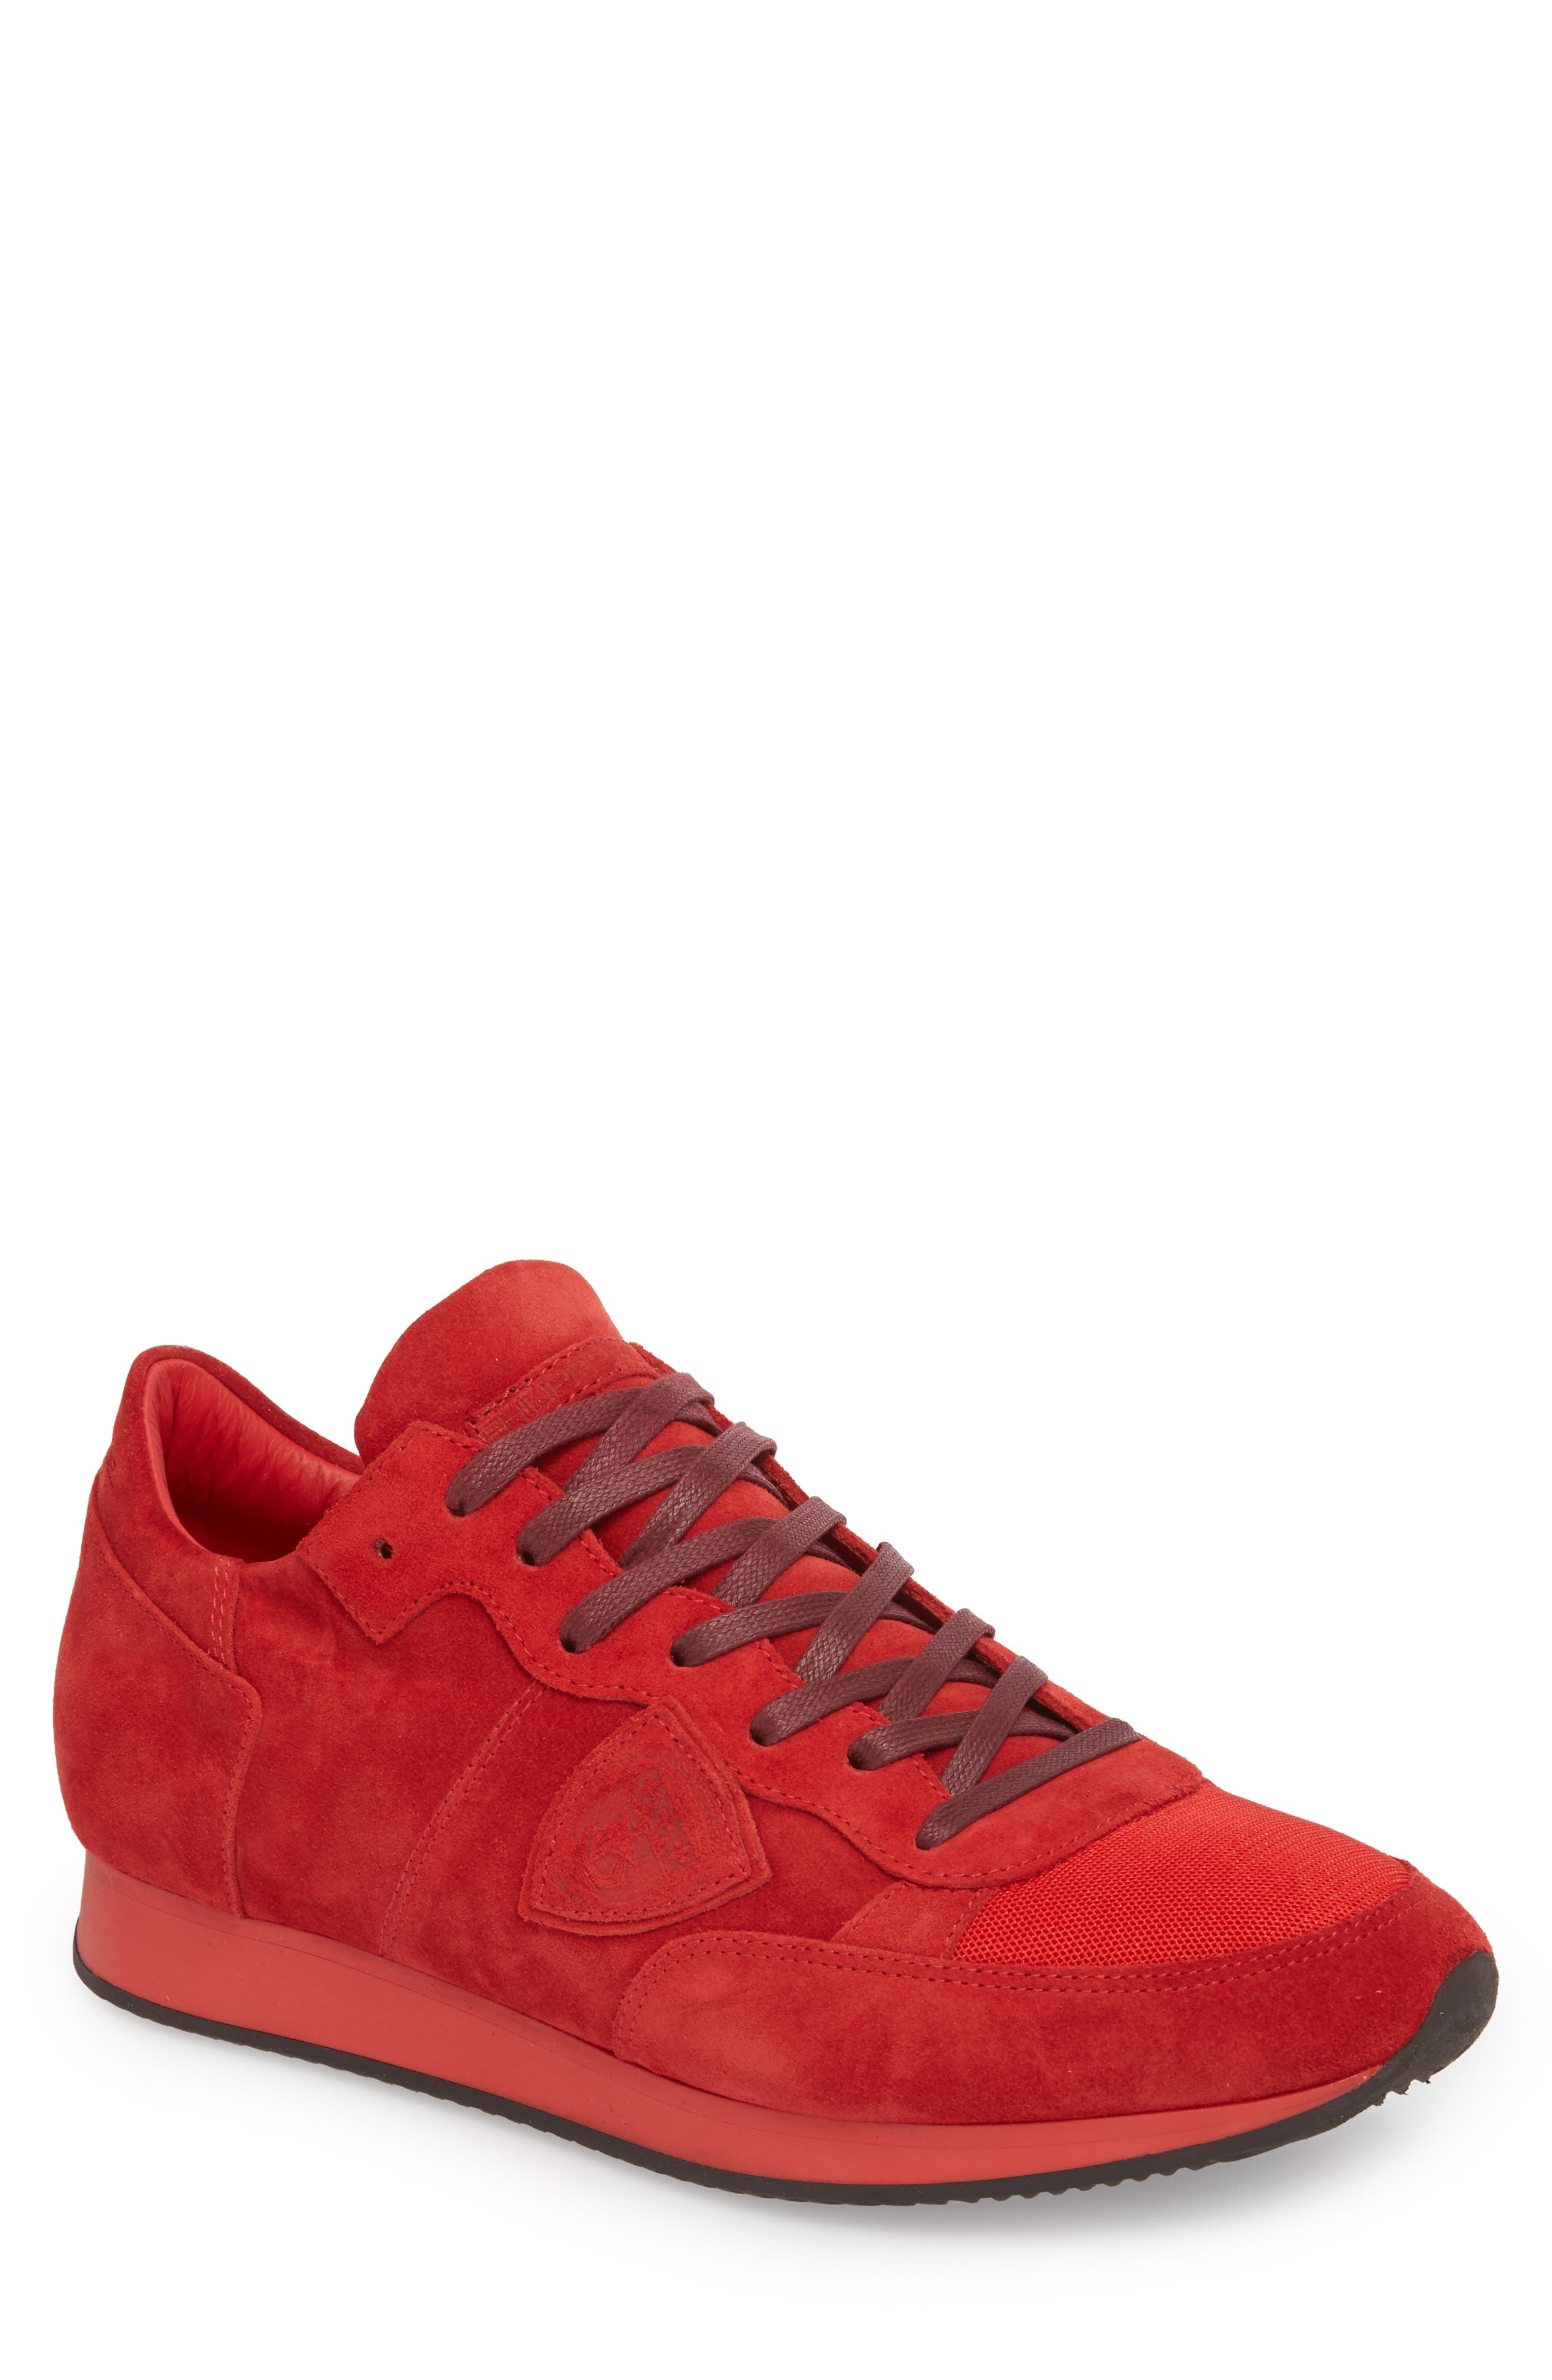 Tropez Low Top Sneaker,                             Main thumbnail 1, color,                             Red Suede